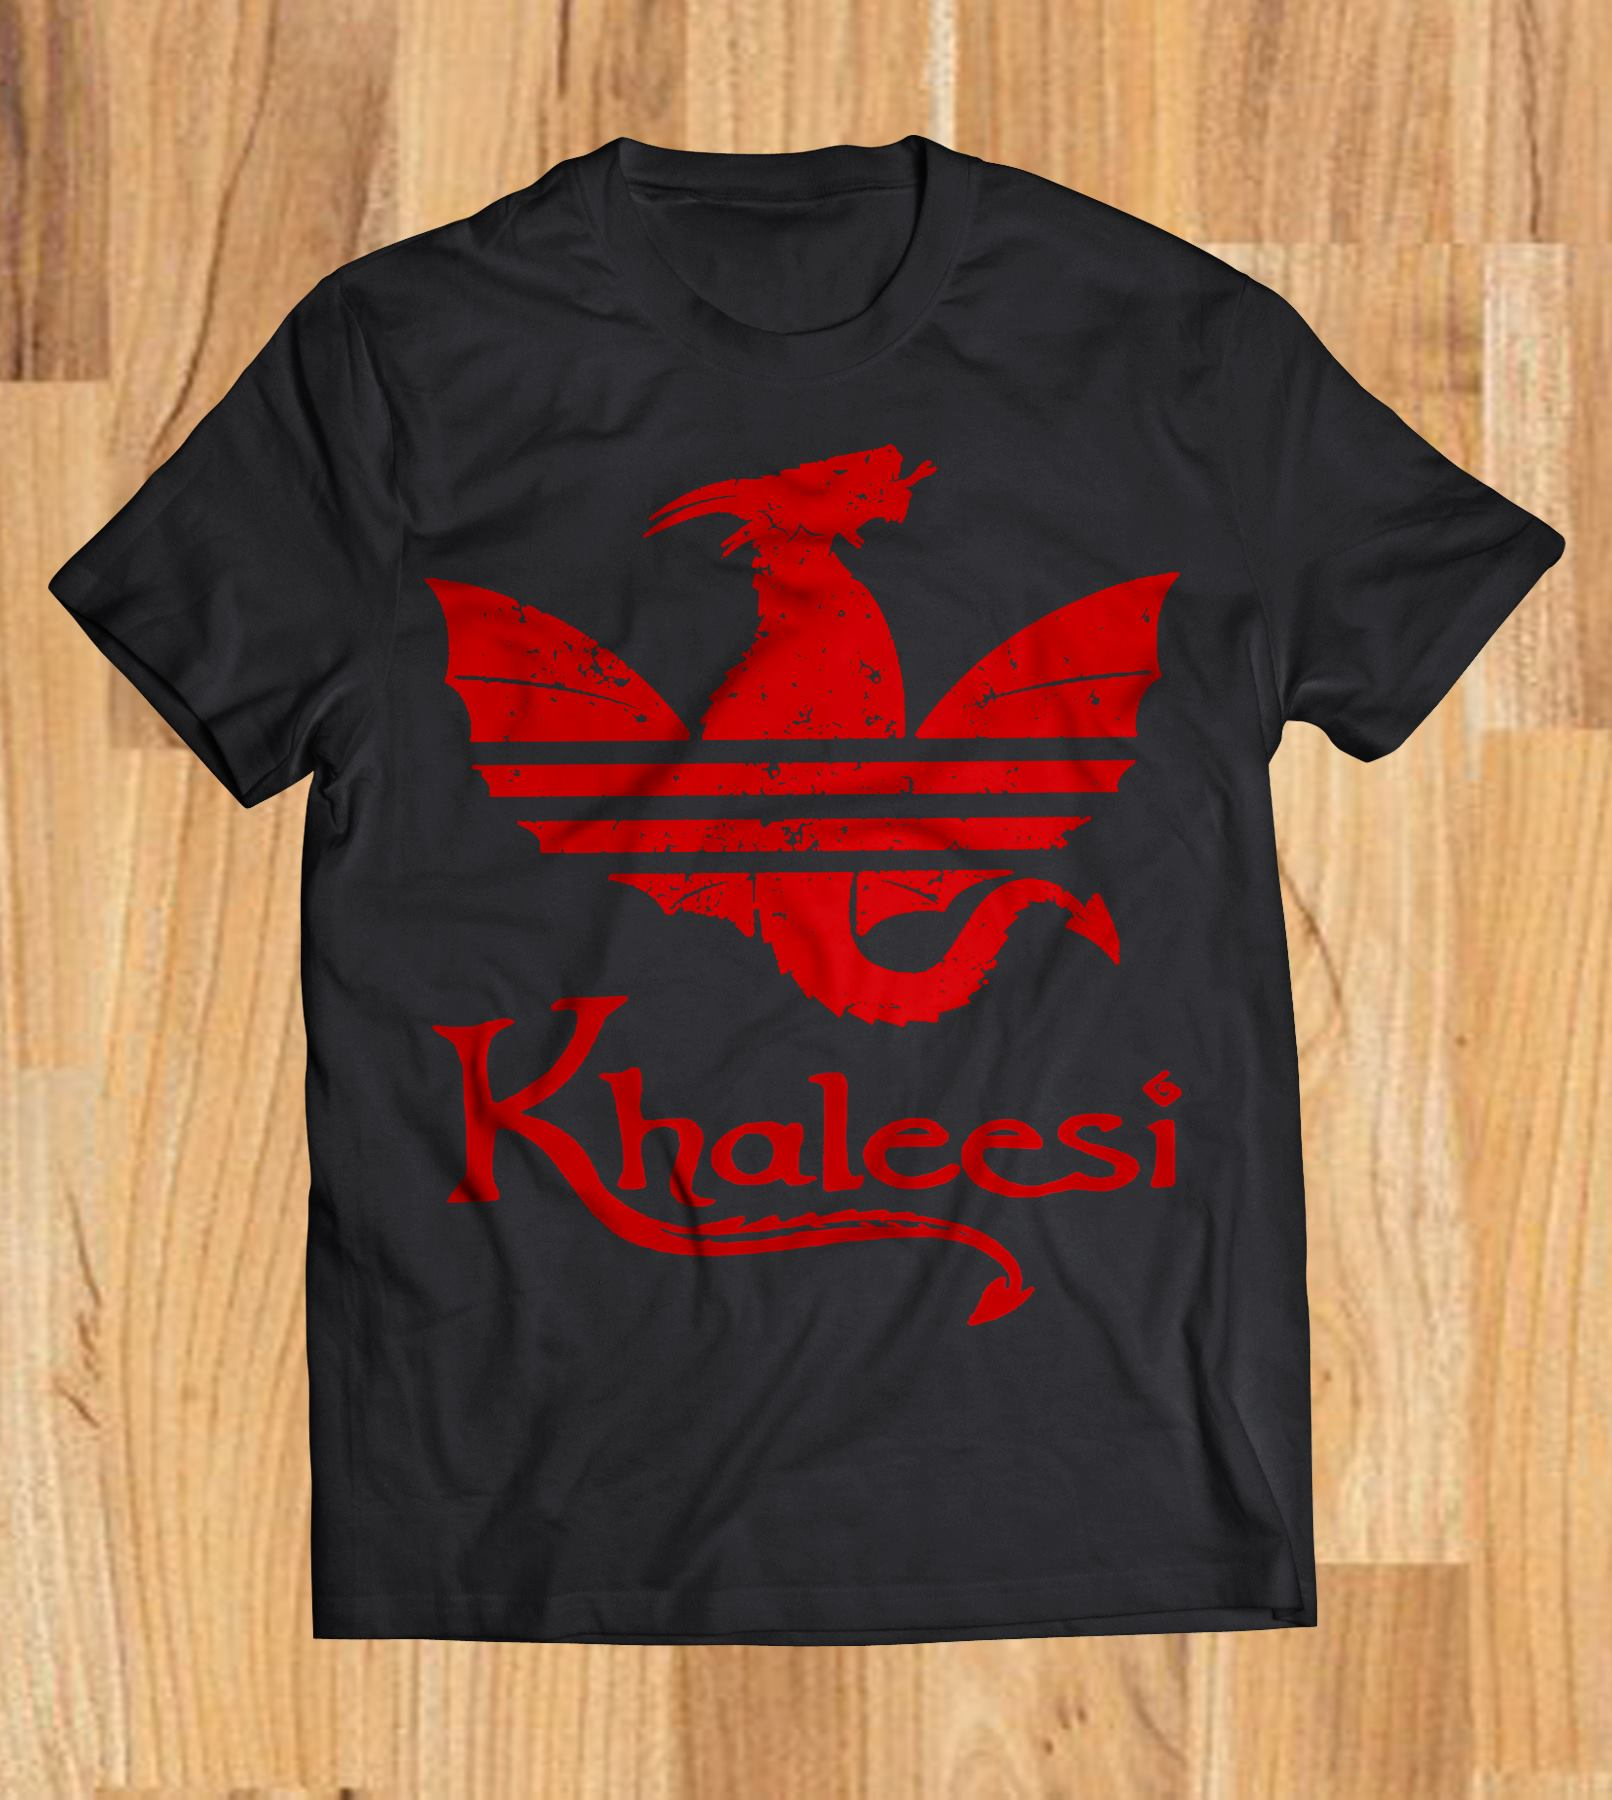 Que pasa trabajo bordillo  Game of thrones Adidas Khaleesi shirt